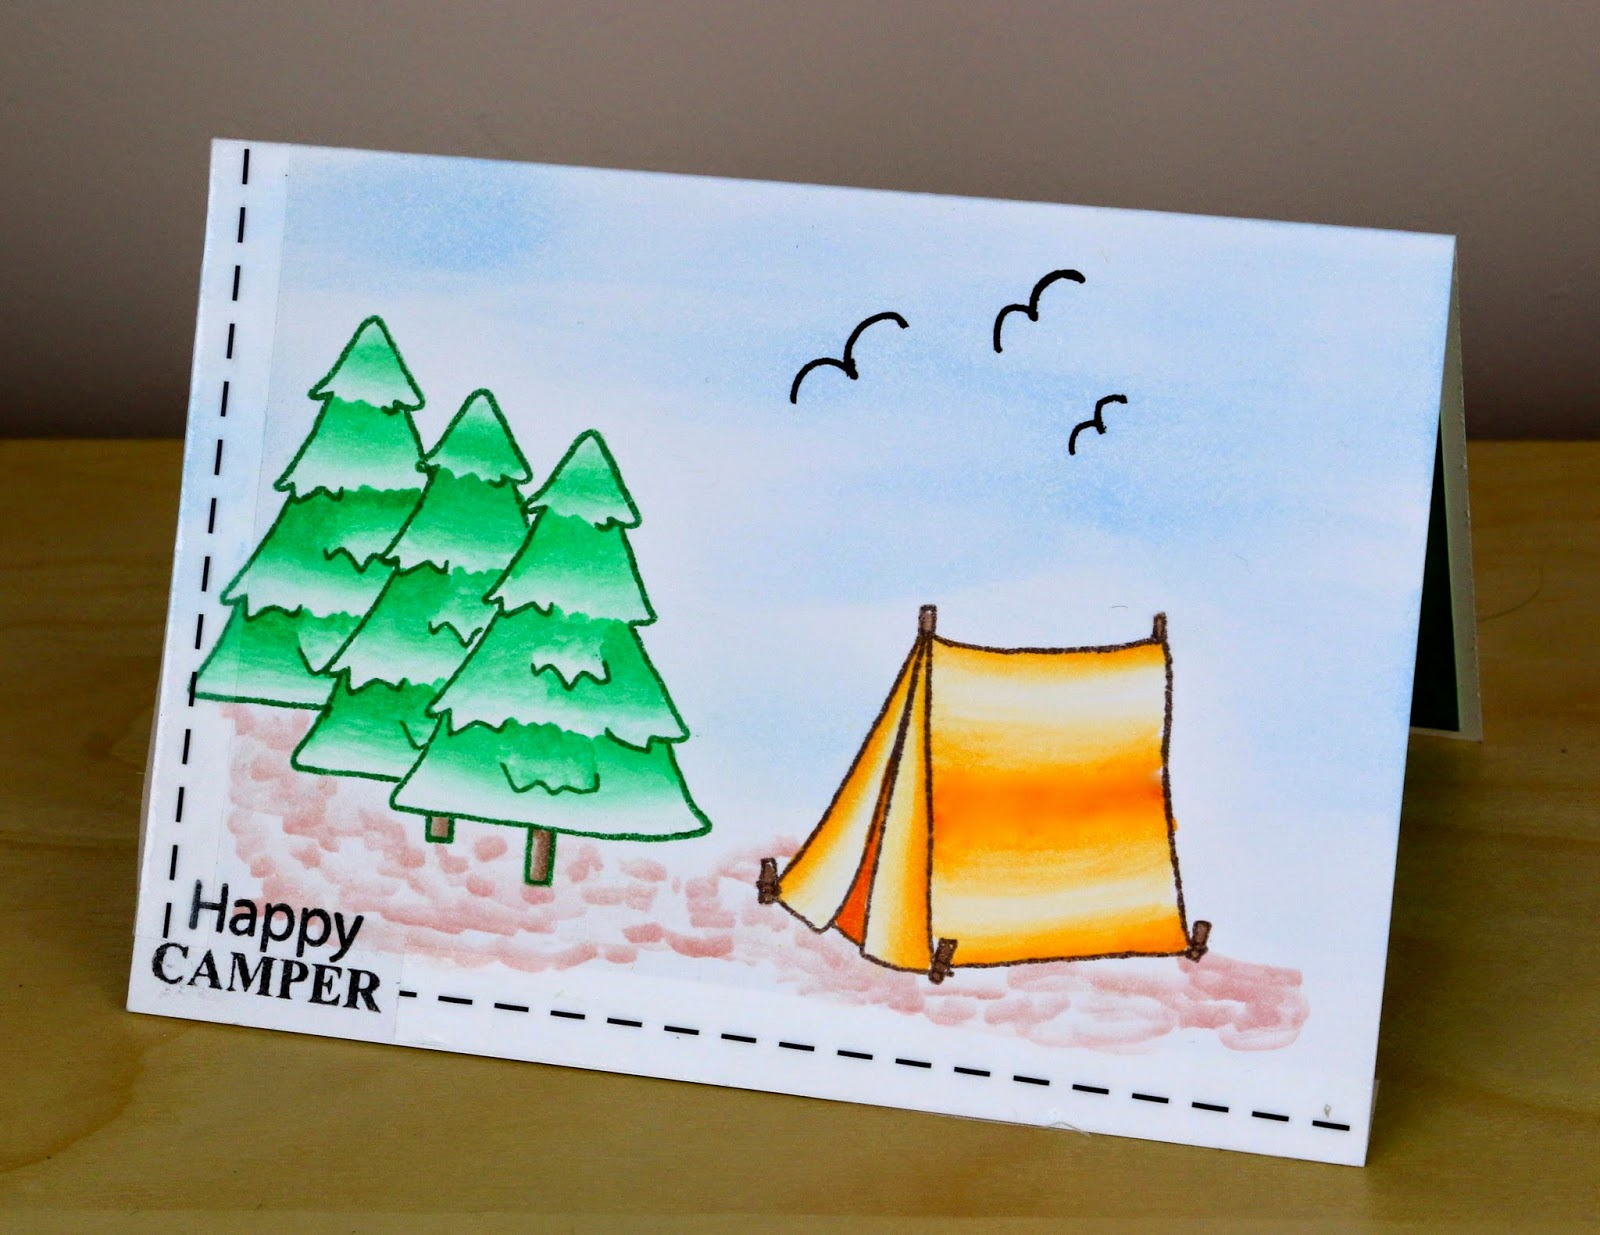 SRM Stickers Blog - Happy Camper Pop Up Card by Cathy A - #card #popup #stamped #stickerstitches #janesdoodles #clearstamps